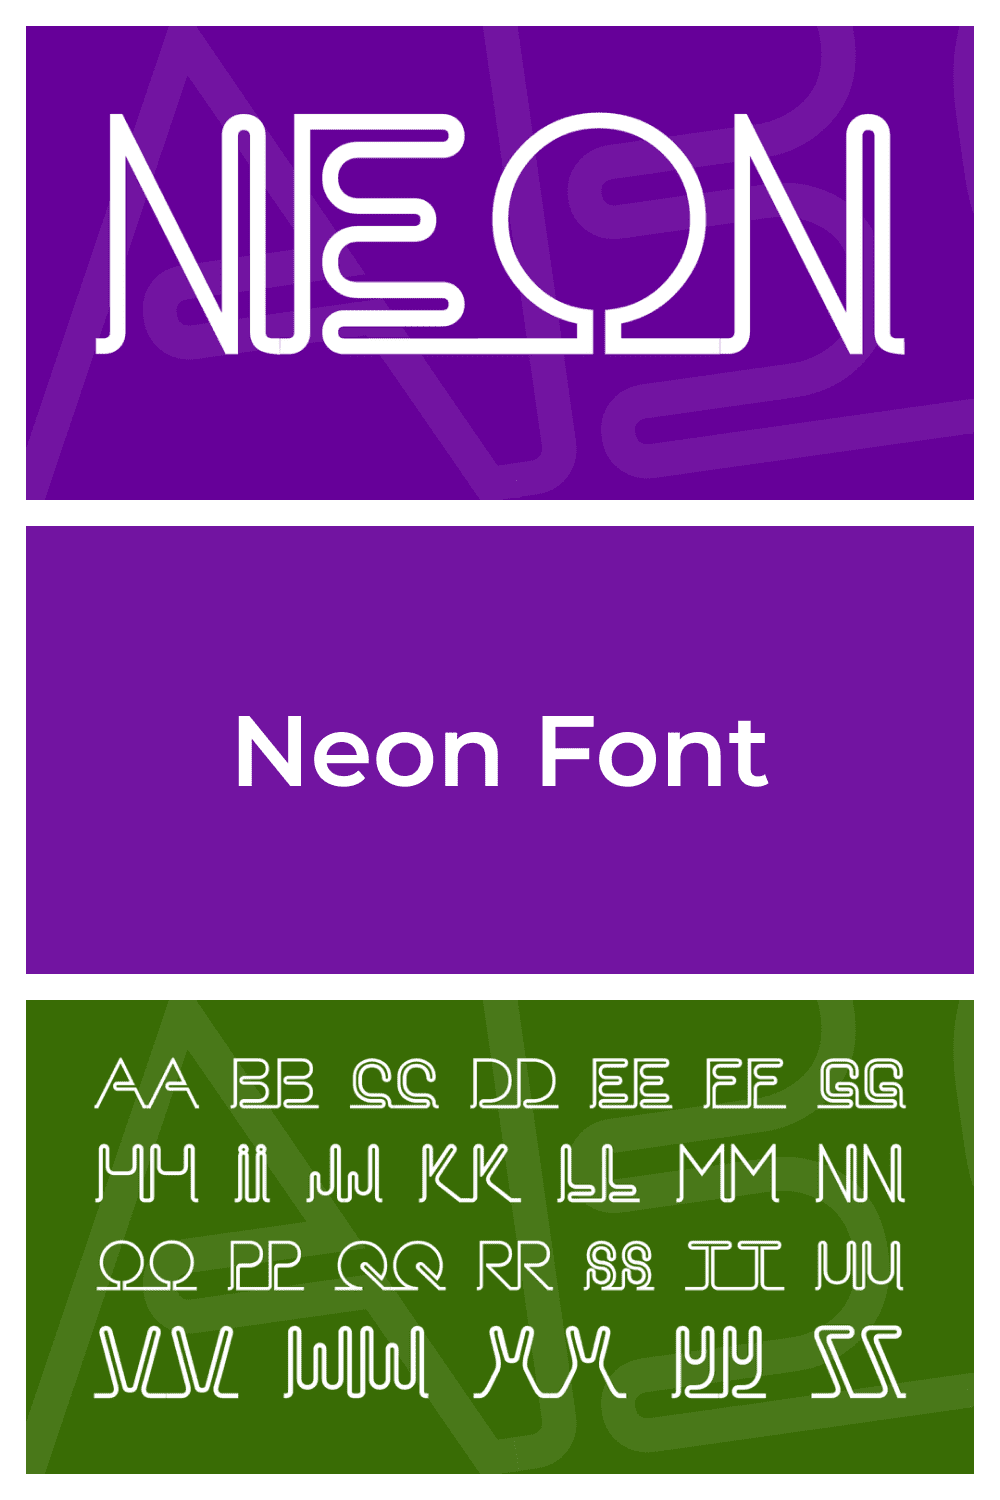 A creative font with unusual shapes.